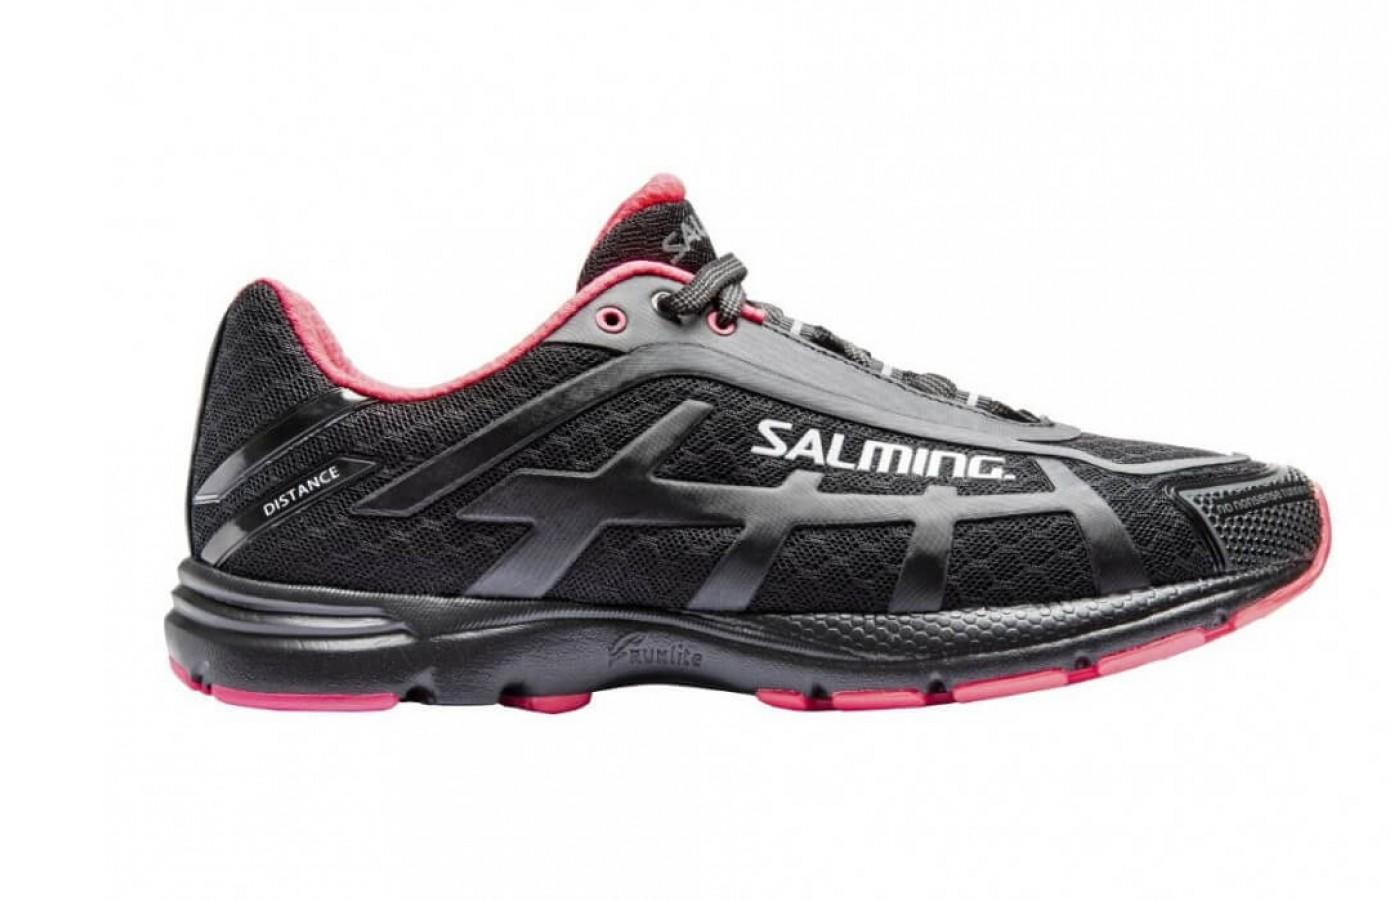 d2723b52 Salming Distance D4 is a good racing or daily running shoe ...